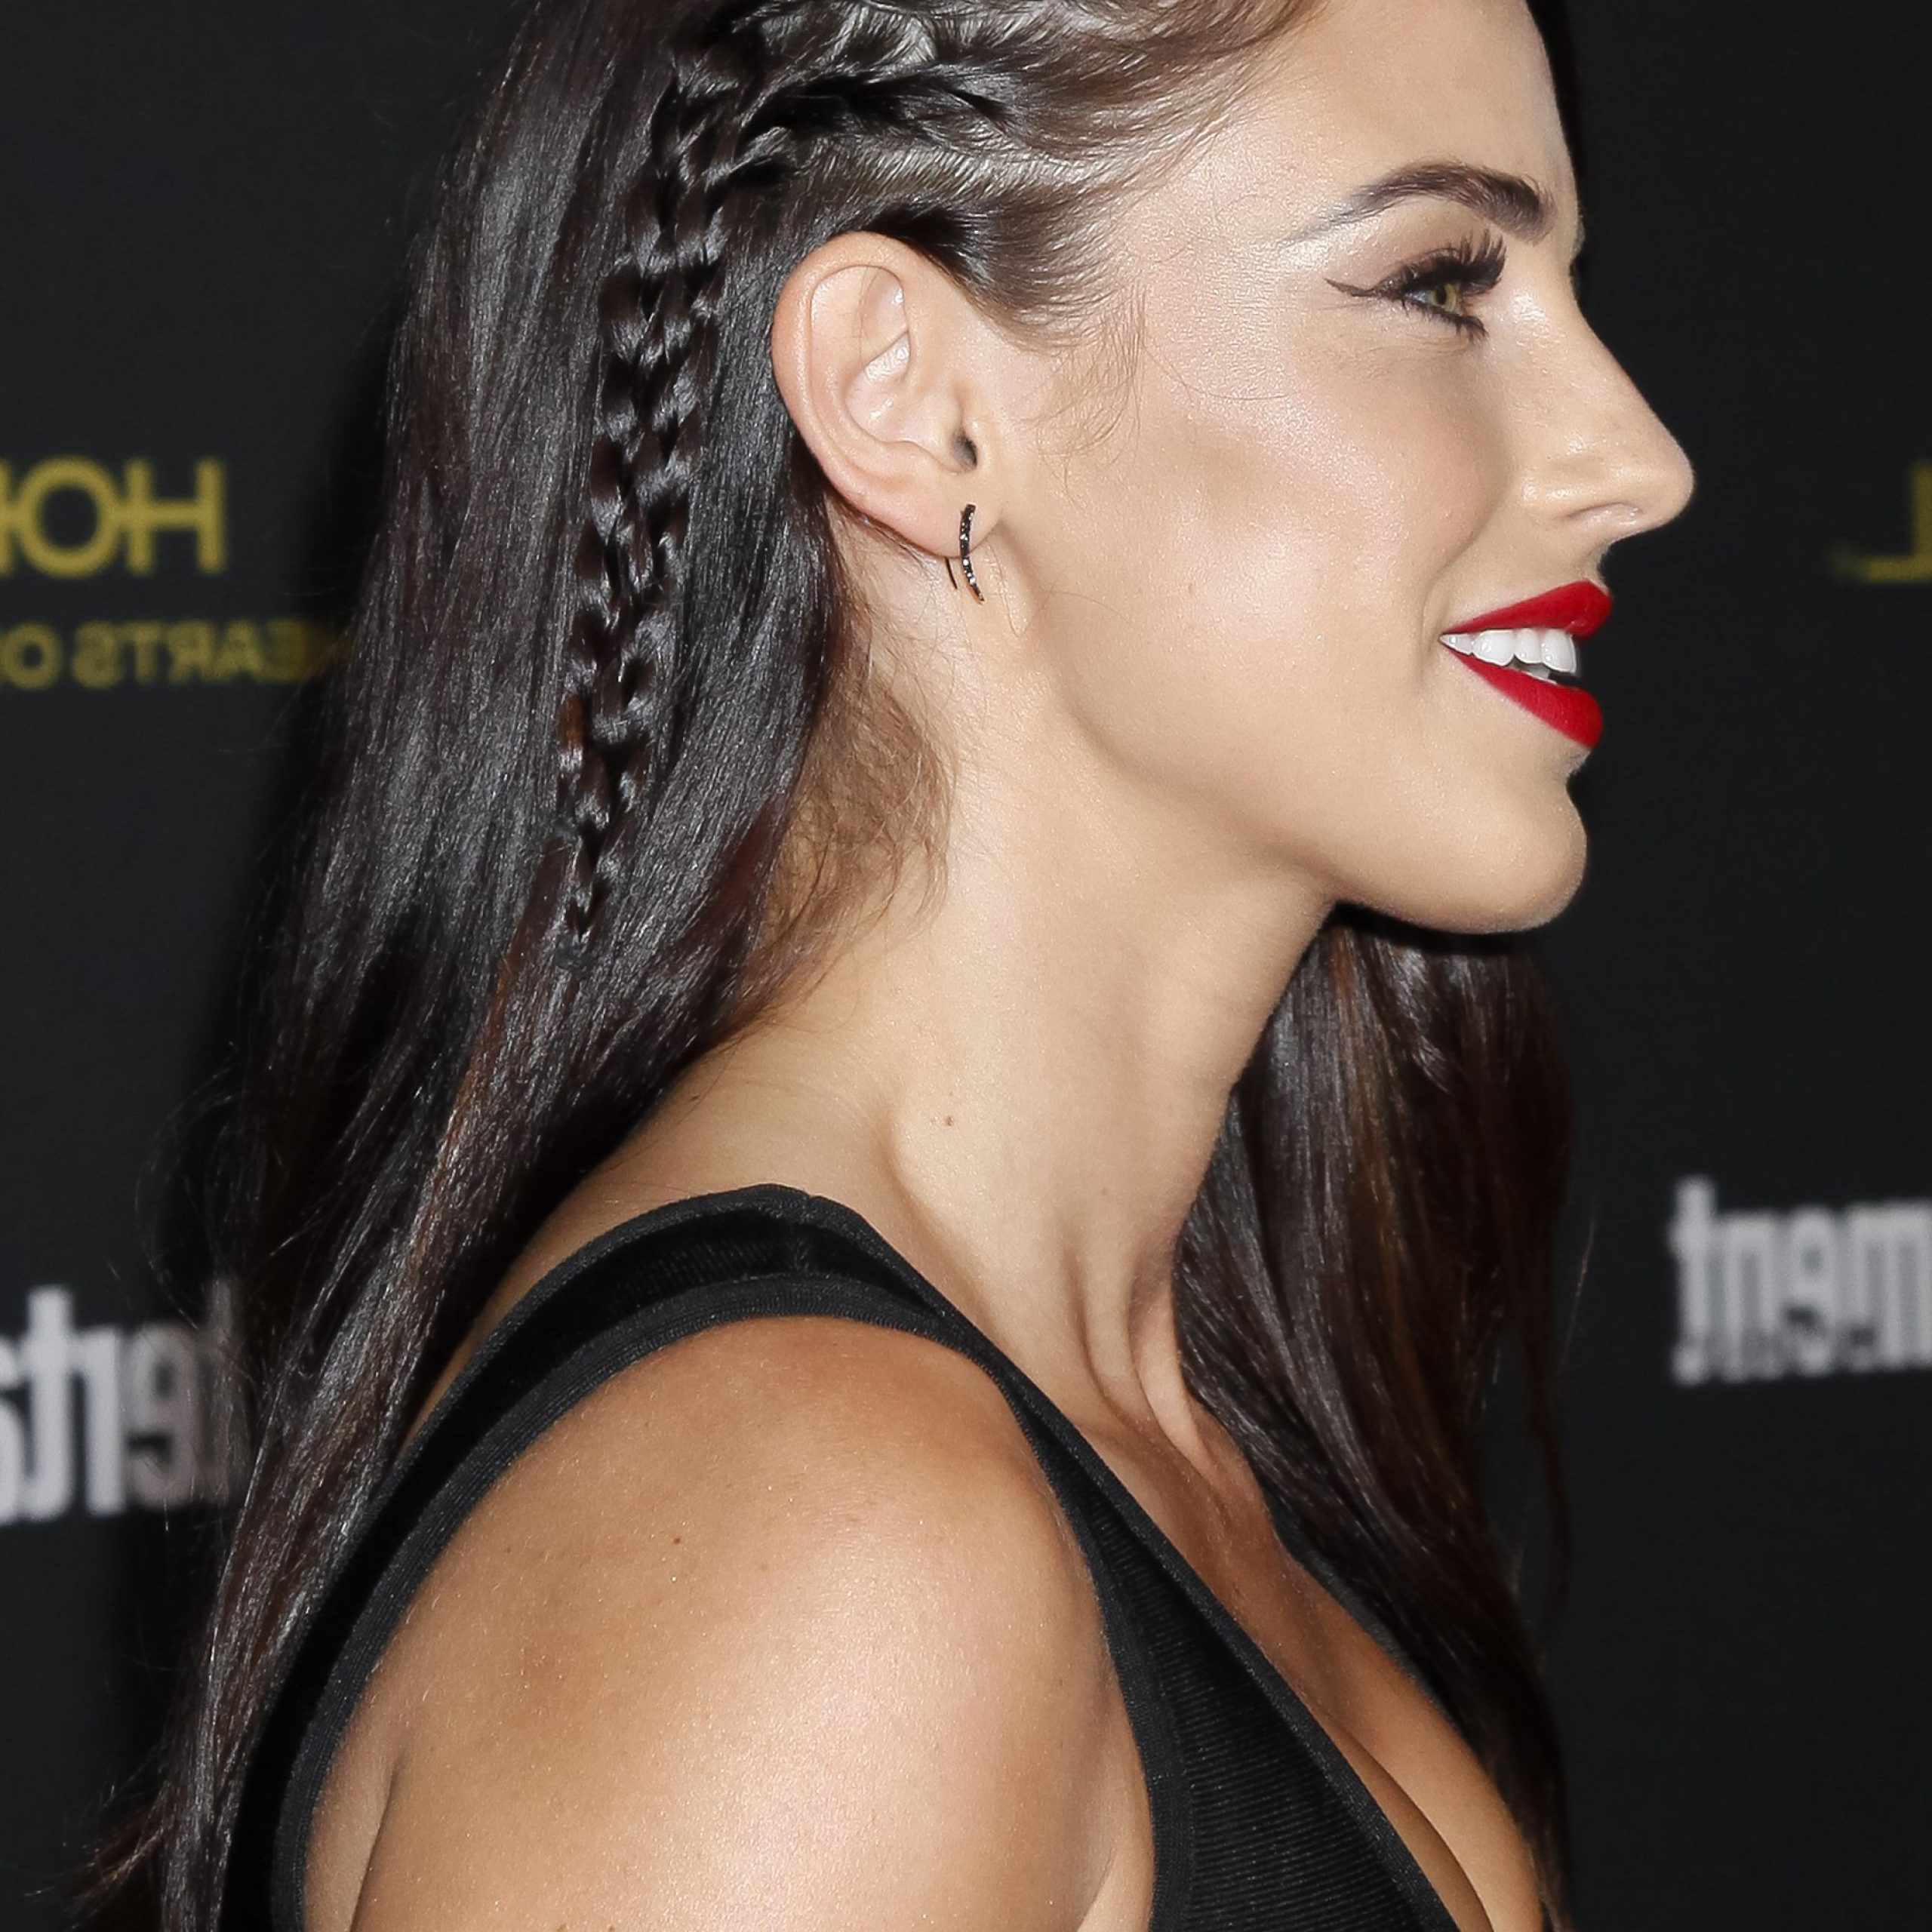 60 Easy Braided Hairstyles – Cool Braid How To's & Ideas For Recent Crisp Pulled Back Braid Hairstyles (Gallery 4 of 20)